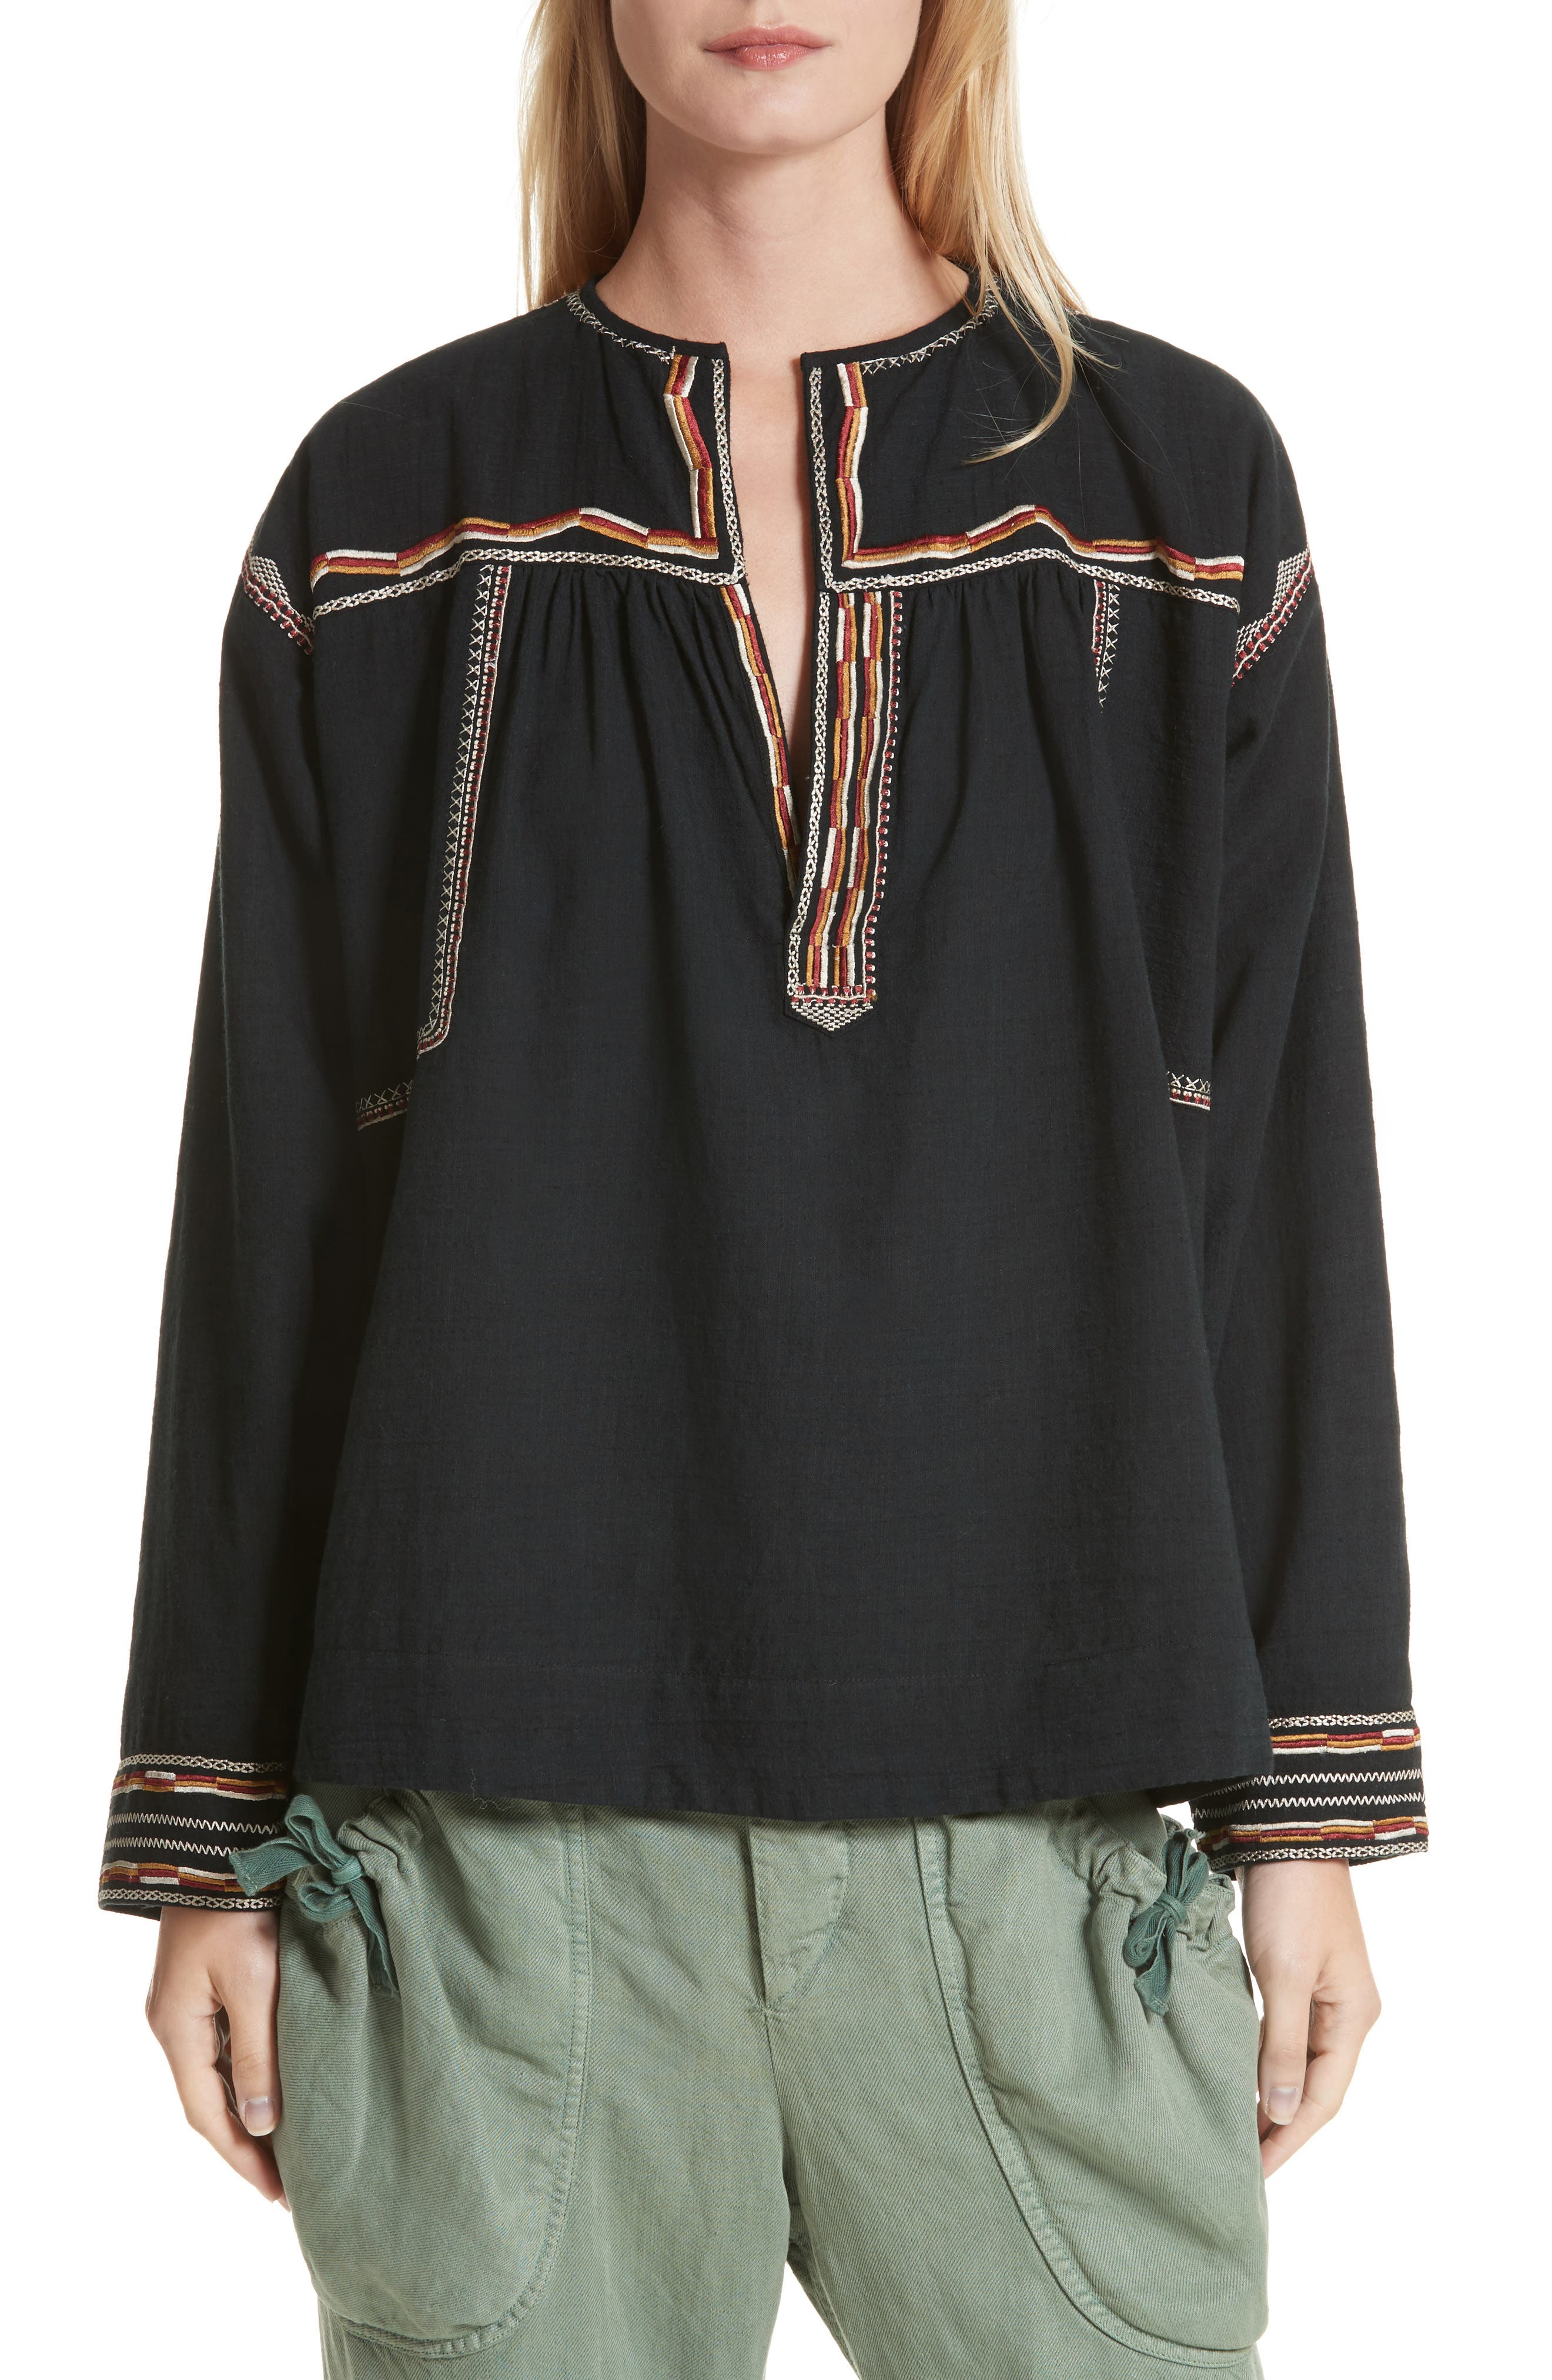 Isabel Marant Étoile Blicky Embroidered Top,                             Main thumbnail 1, color,                             Black